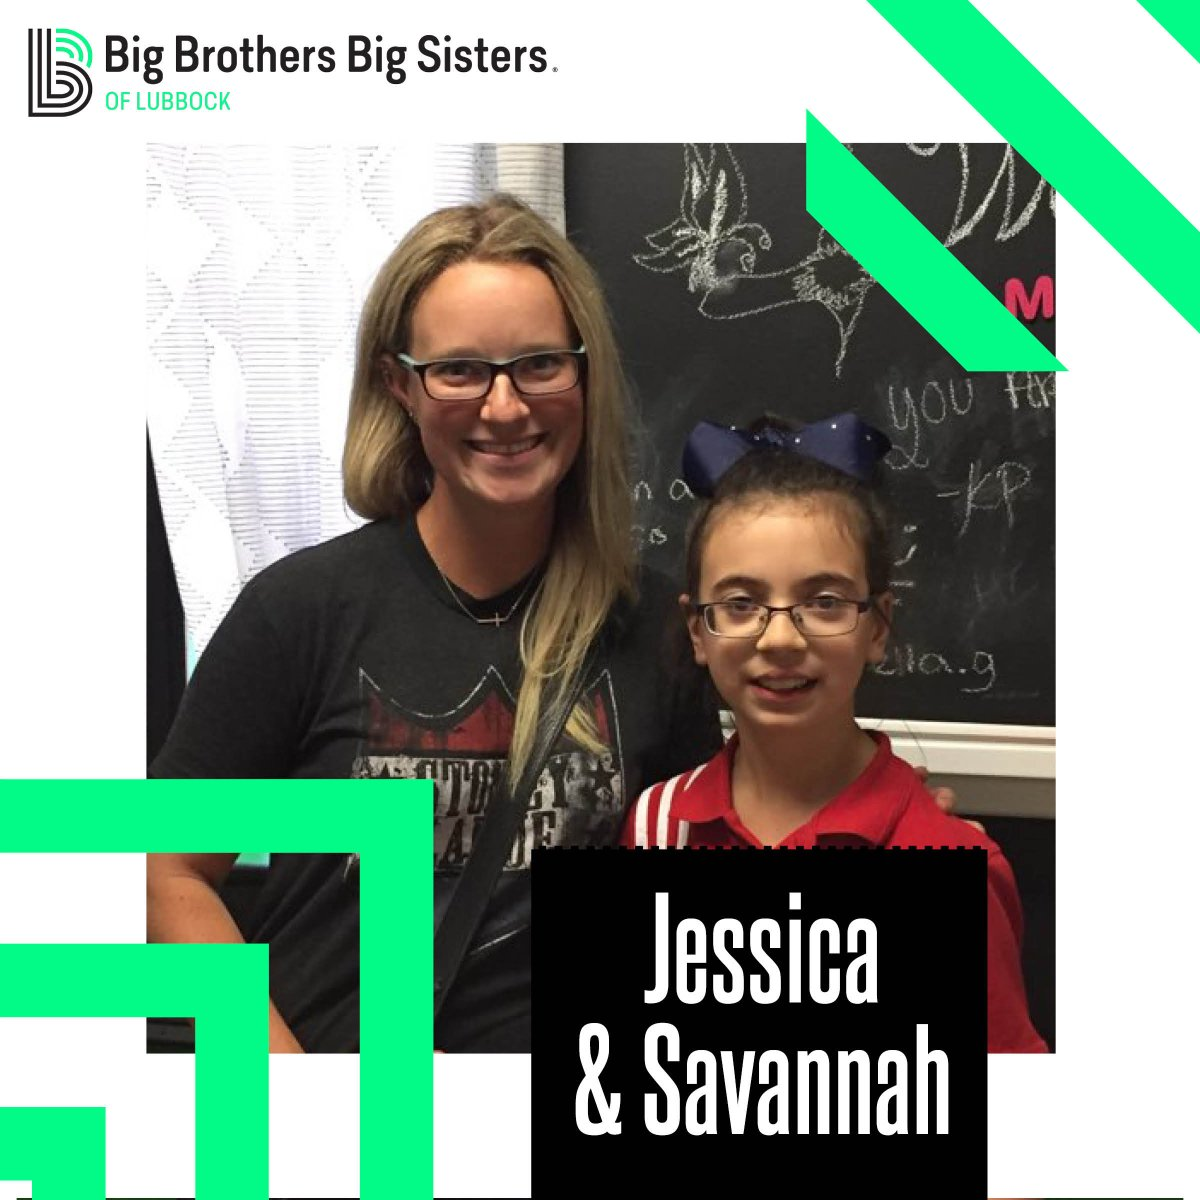 It's #newmatchmonday y'all! Meet Big Sister Jessica and Little Sister Savannah. These two went to the BBBS Bowling Event last month for their first outing. They would like to spend their time together making crafts, playing basketball and working with horses! https://t.co/QIFxfWlNBM